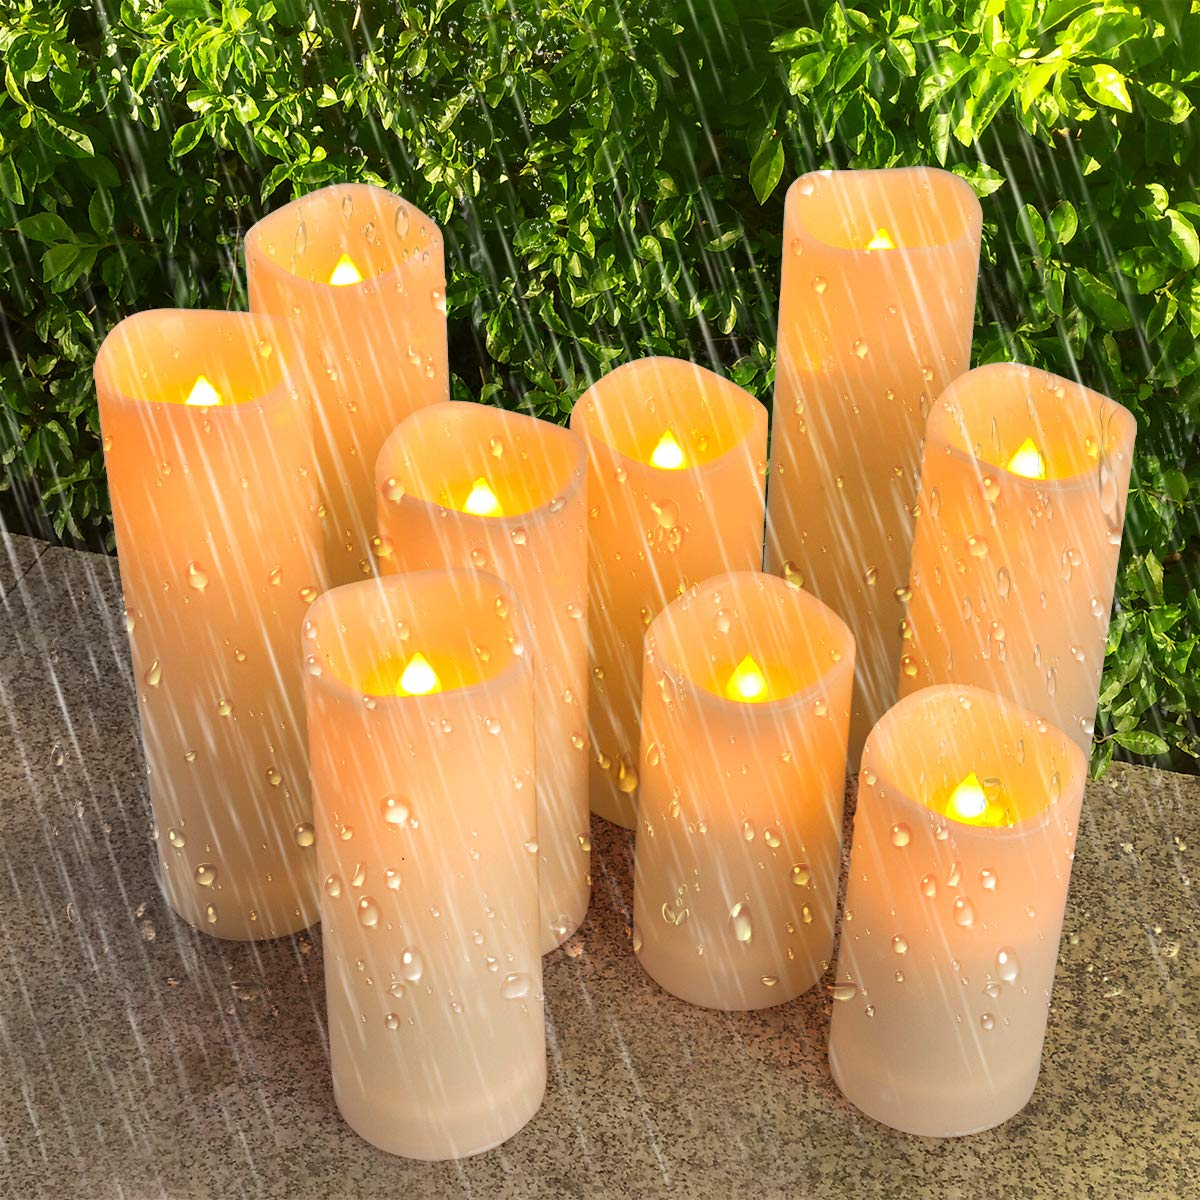 Comenzar Flameless Candles, Led Candles Set of 12(H 4'' 5'' 6'' 7'' x D 2.1'') Outdoor Indoor Candles with Remote Timer (Made of Plastic) by Comenzar